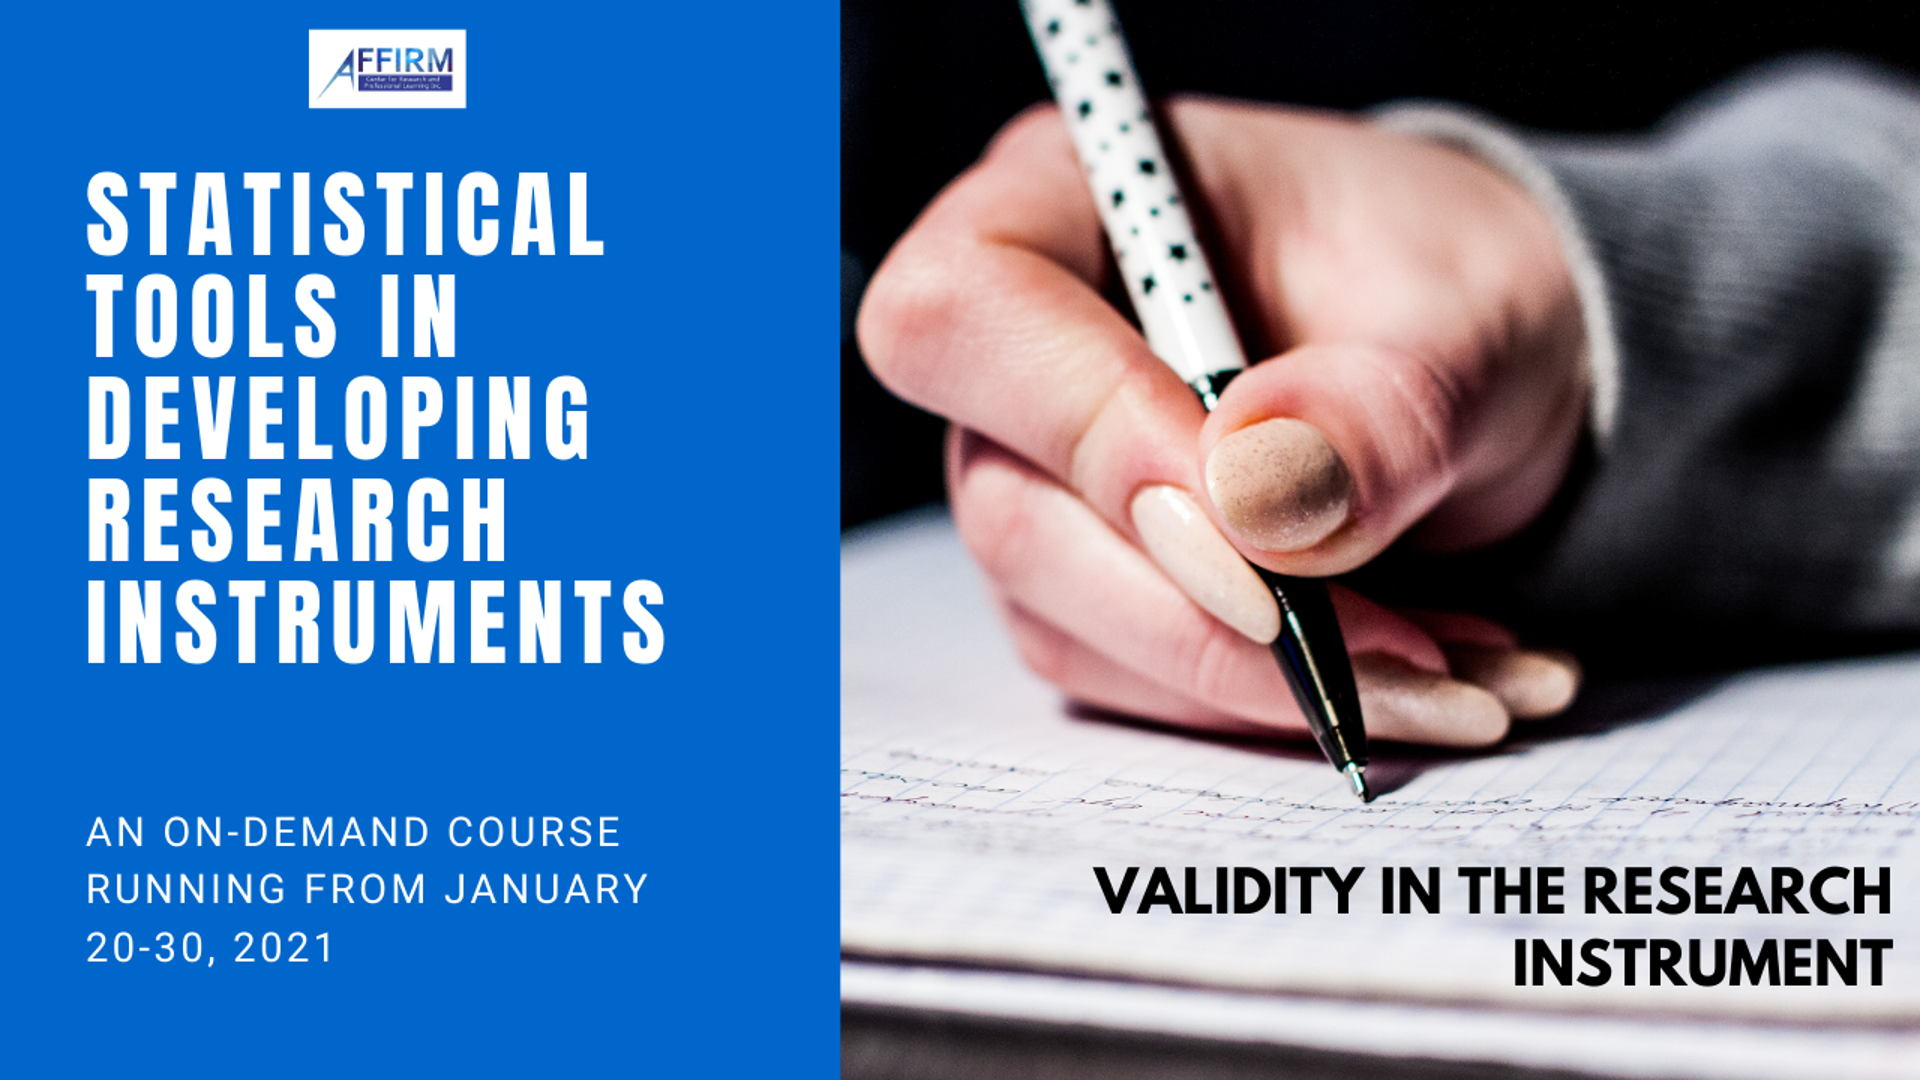 Validity in research instruments